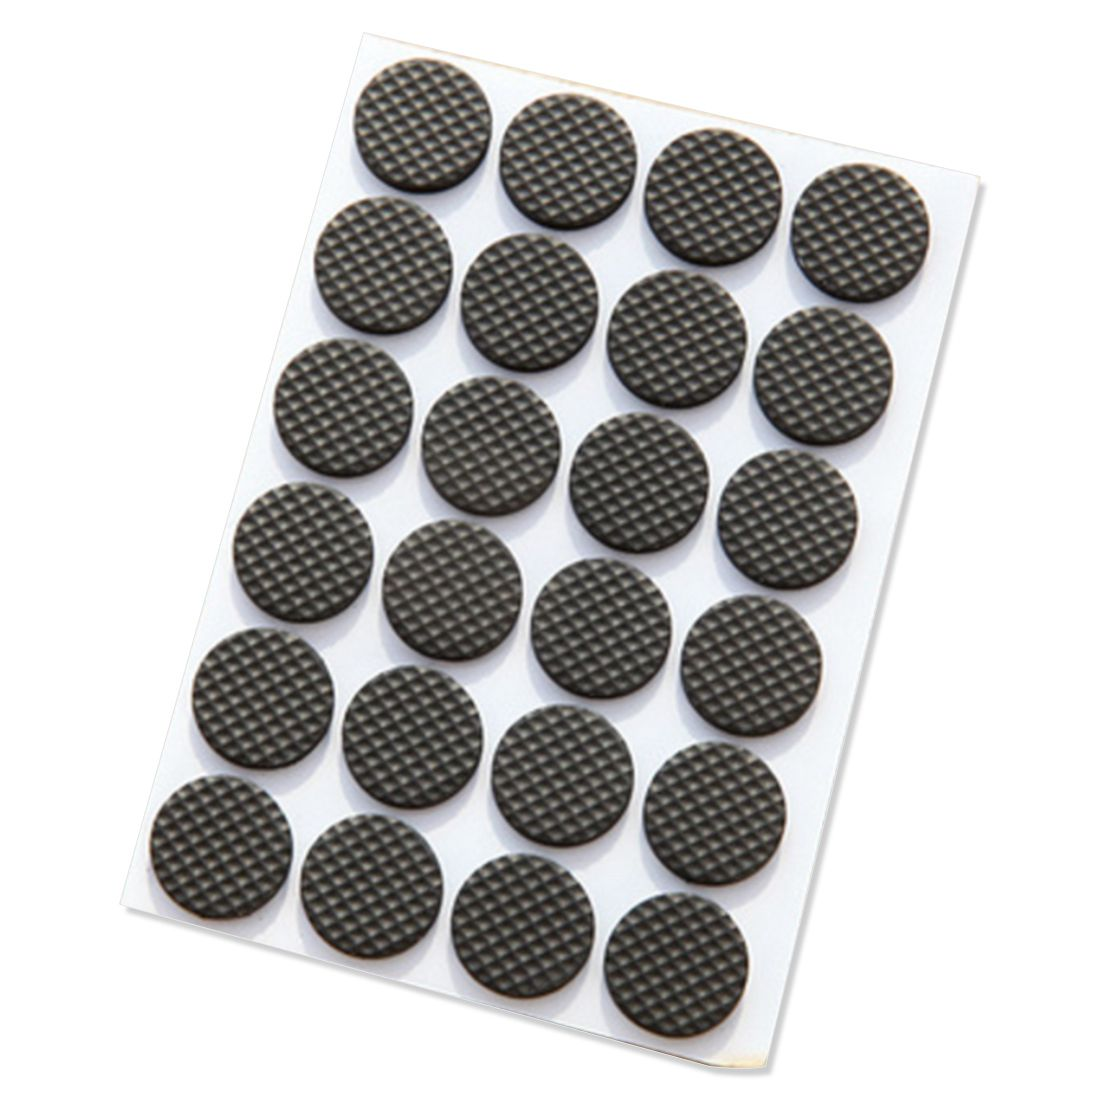 Hot Sale Self-stick Anti-skid Pad 48 Piece Pack Furniture and Floor Protectors (Round) цена 2017